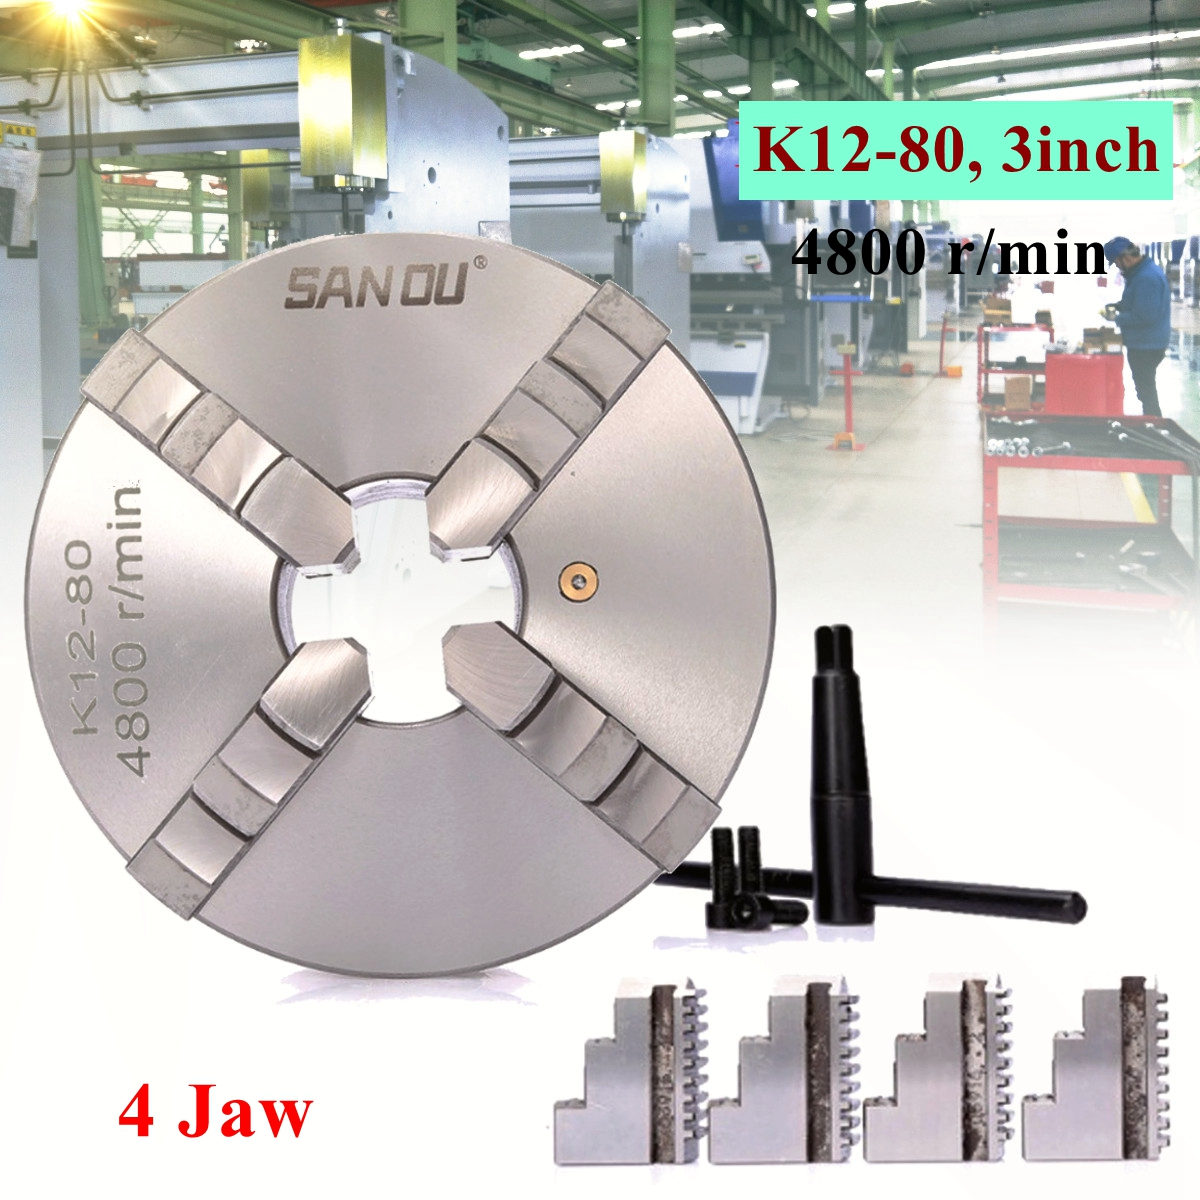 SANOU K12-80 Lathe Chuck 80mm 4 Jaw Self Centering Hardened Reversible Tool Lathe Tools for Drilling Milling Machine 80mm 4jaw independent lathe chuck k12 80 3 self centering chuck for cnc lathe drilling milling machine